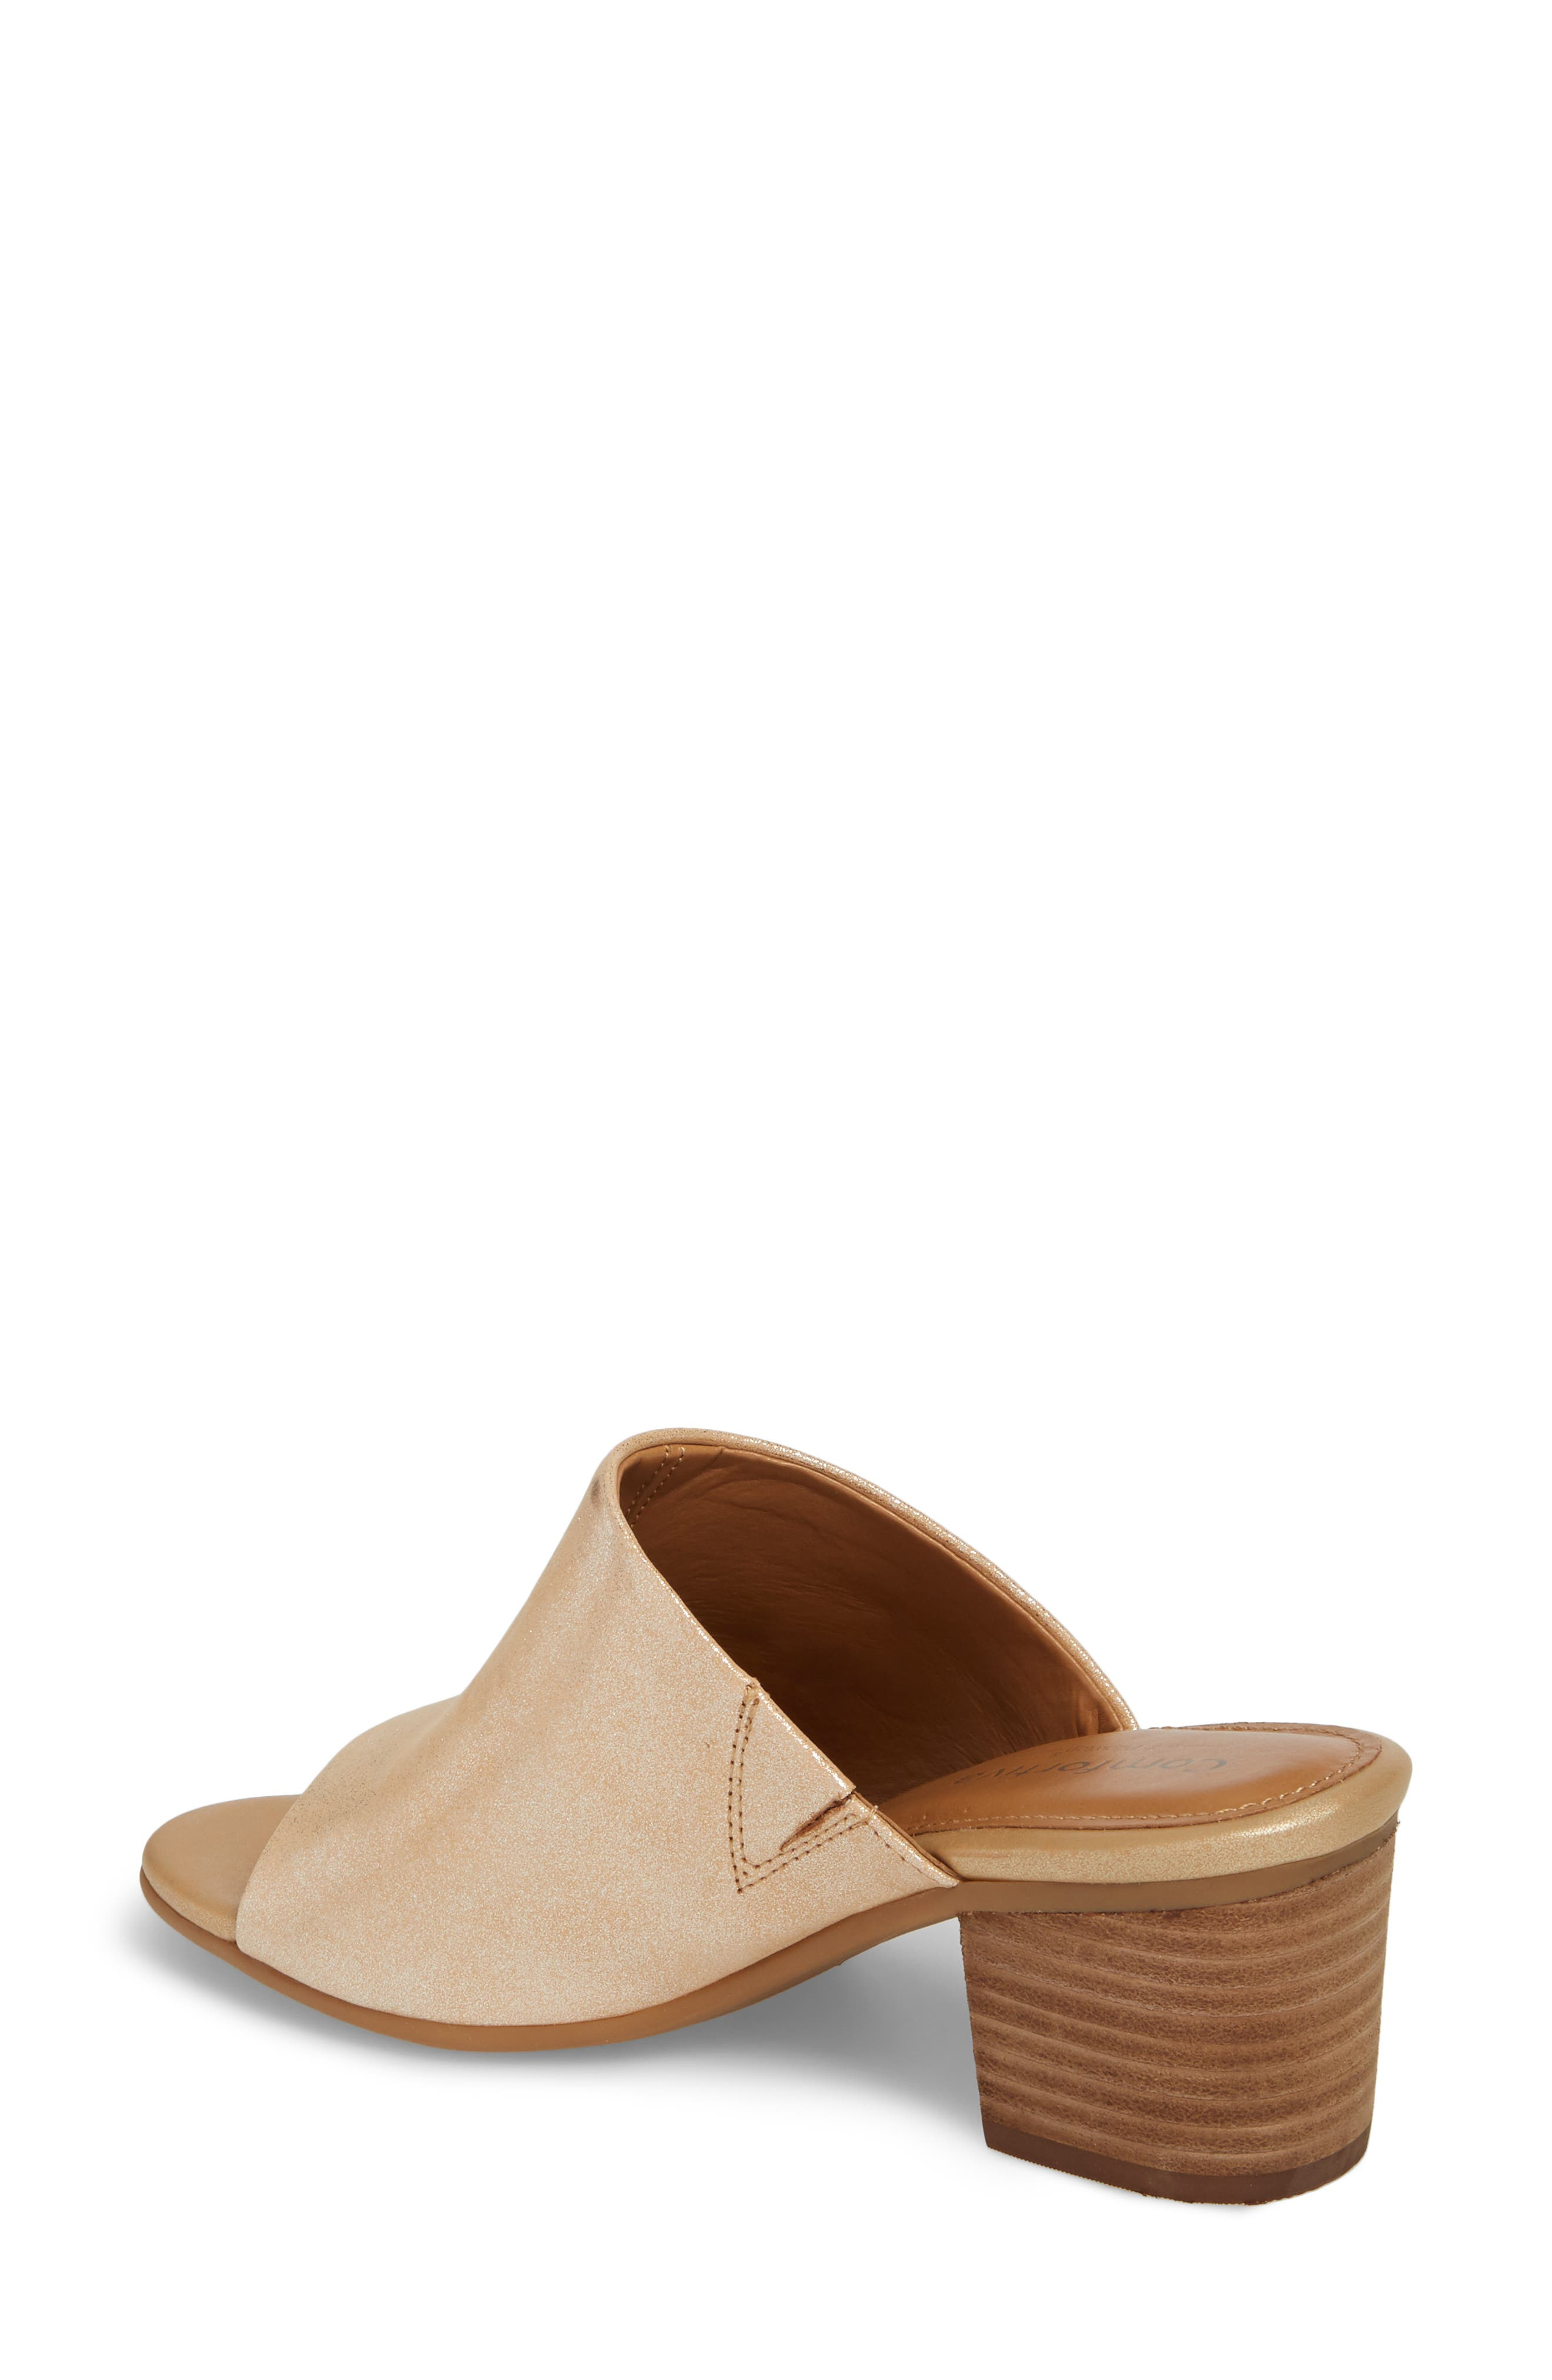 Anabella Sandal,                             Alternate thumbnail 2, color,                             Natural Leather